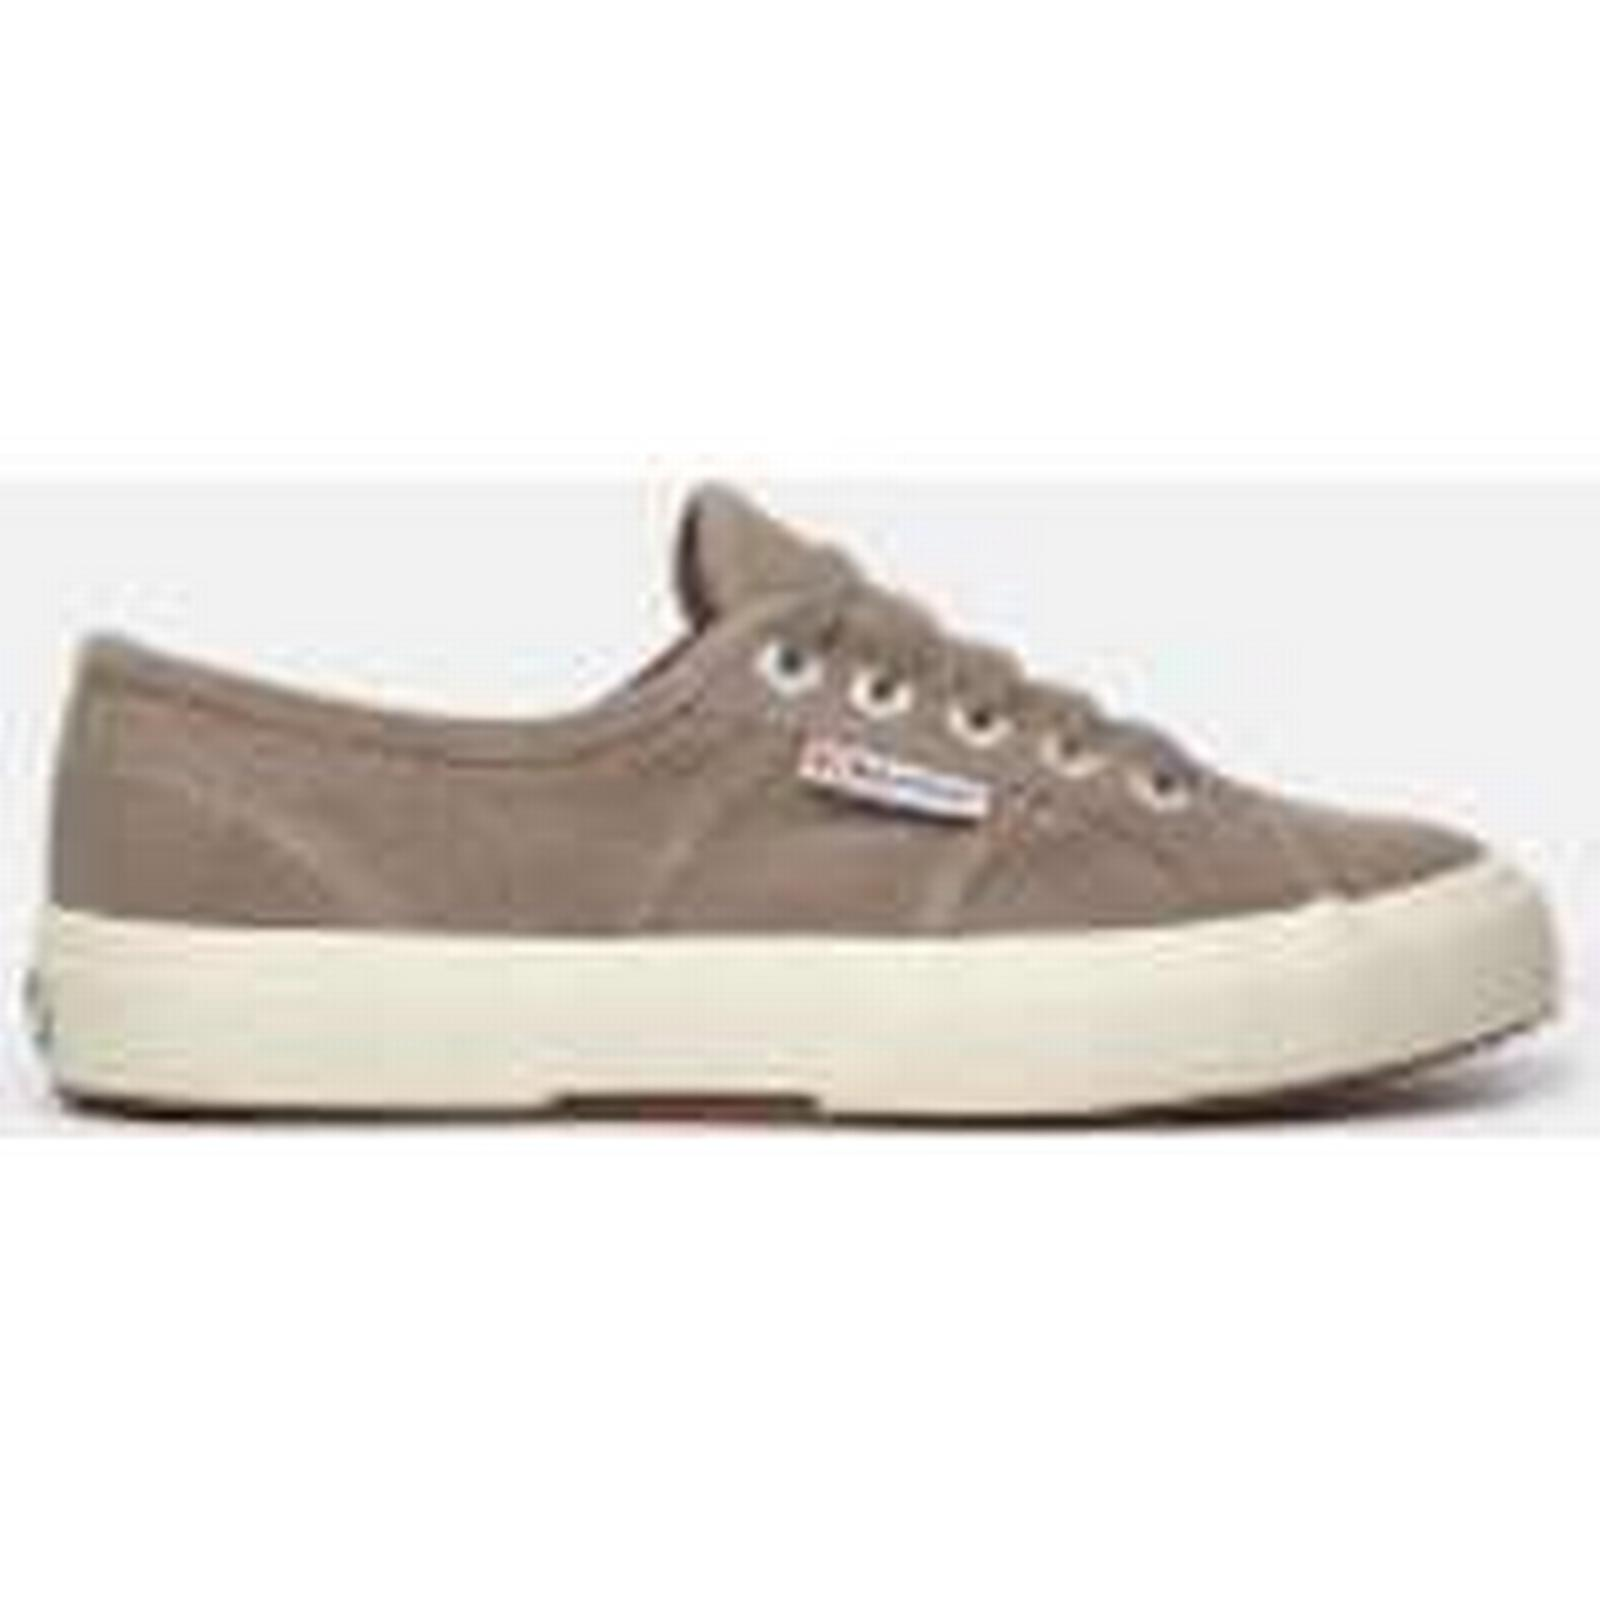 Superga Women's 2750 3 Perfsuew Trainers - Sand - UK 3 2750 - Brown 563807